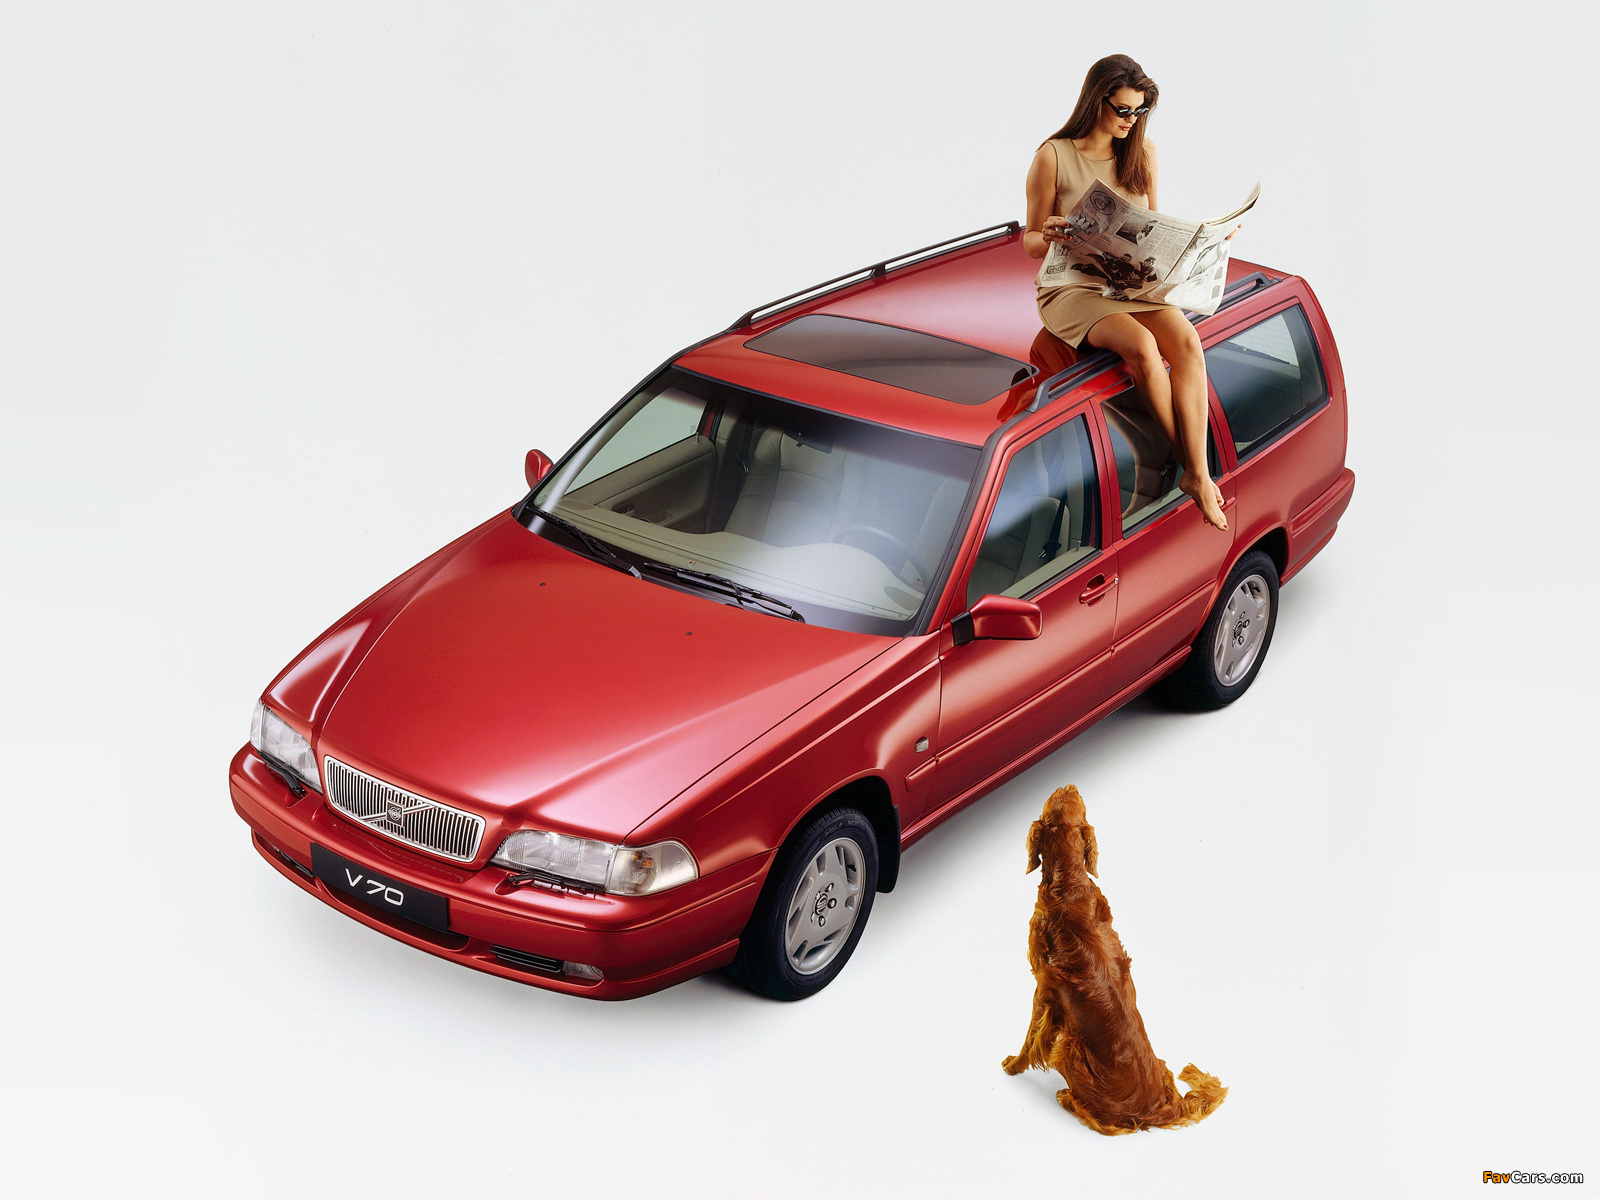 Volvo V70 19972000 wallpapers 1600x1200 1600x1200